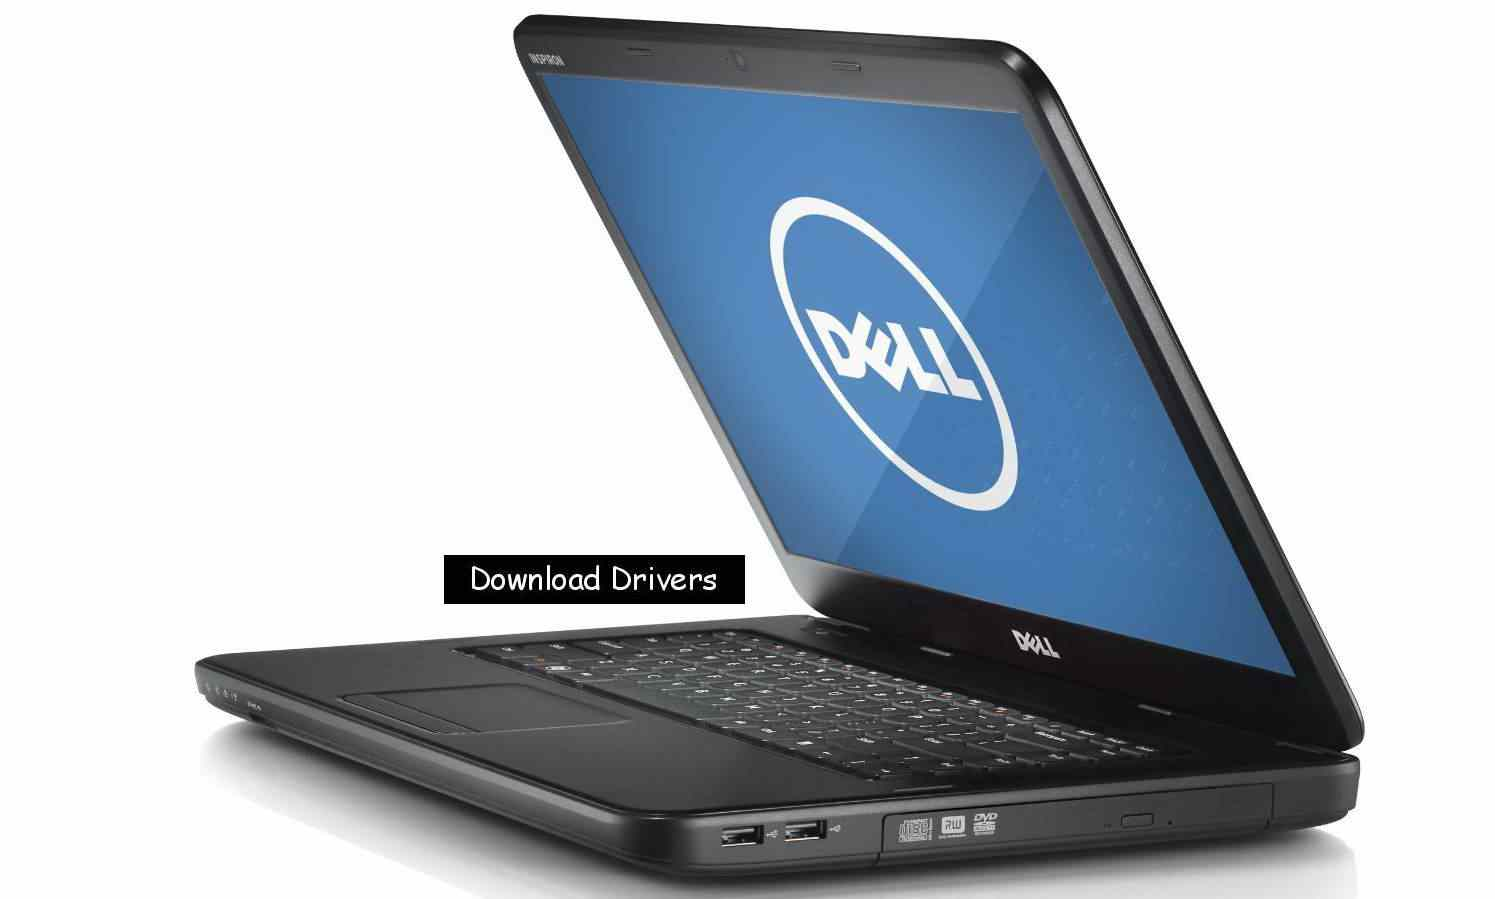 Dell Graphics Driver For Windows 7 Ultimate Free Download